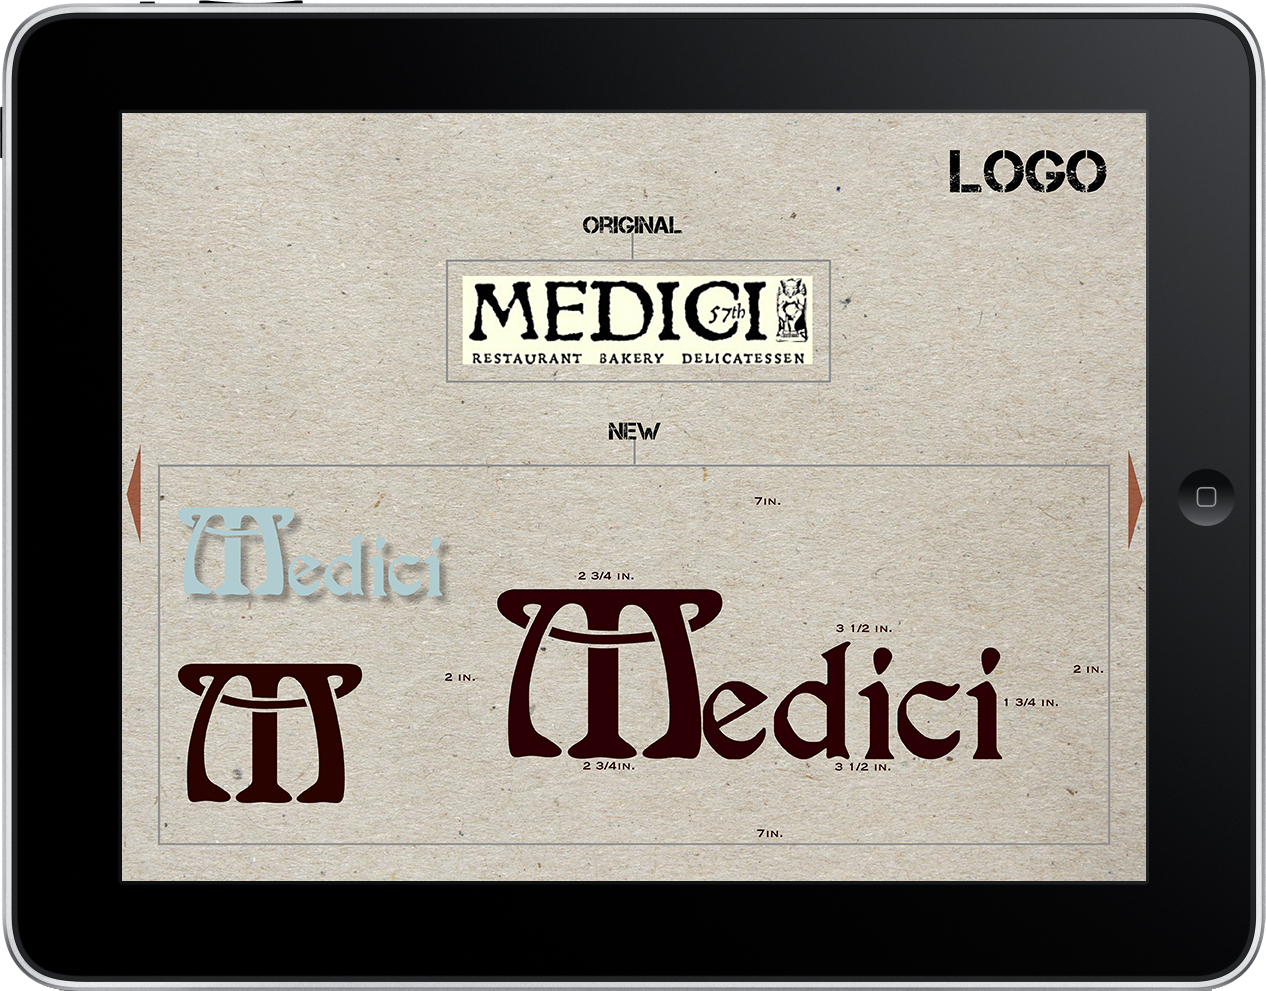 Medici Restaurant Branding Manual